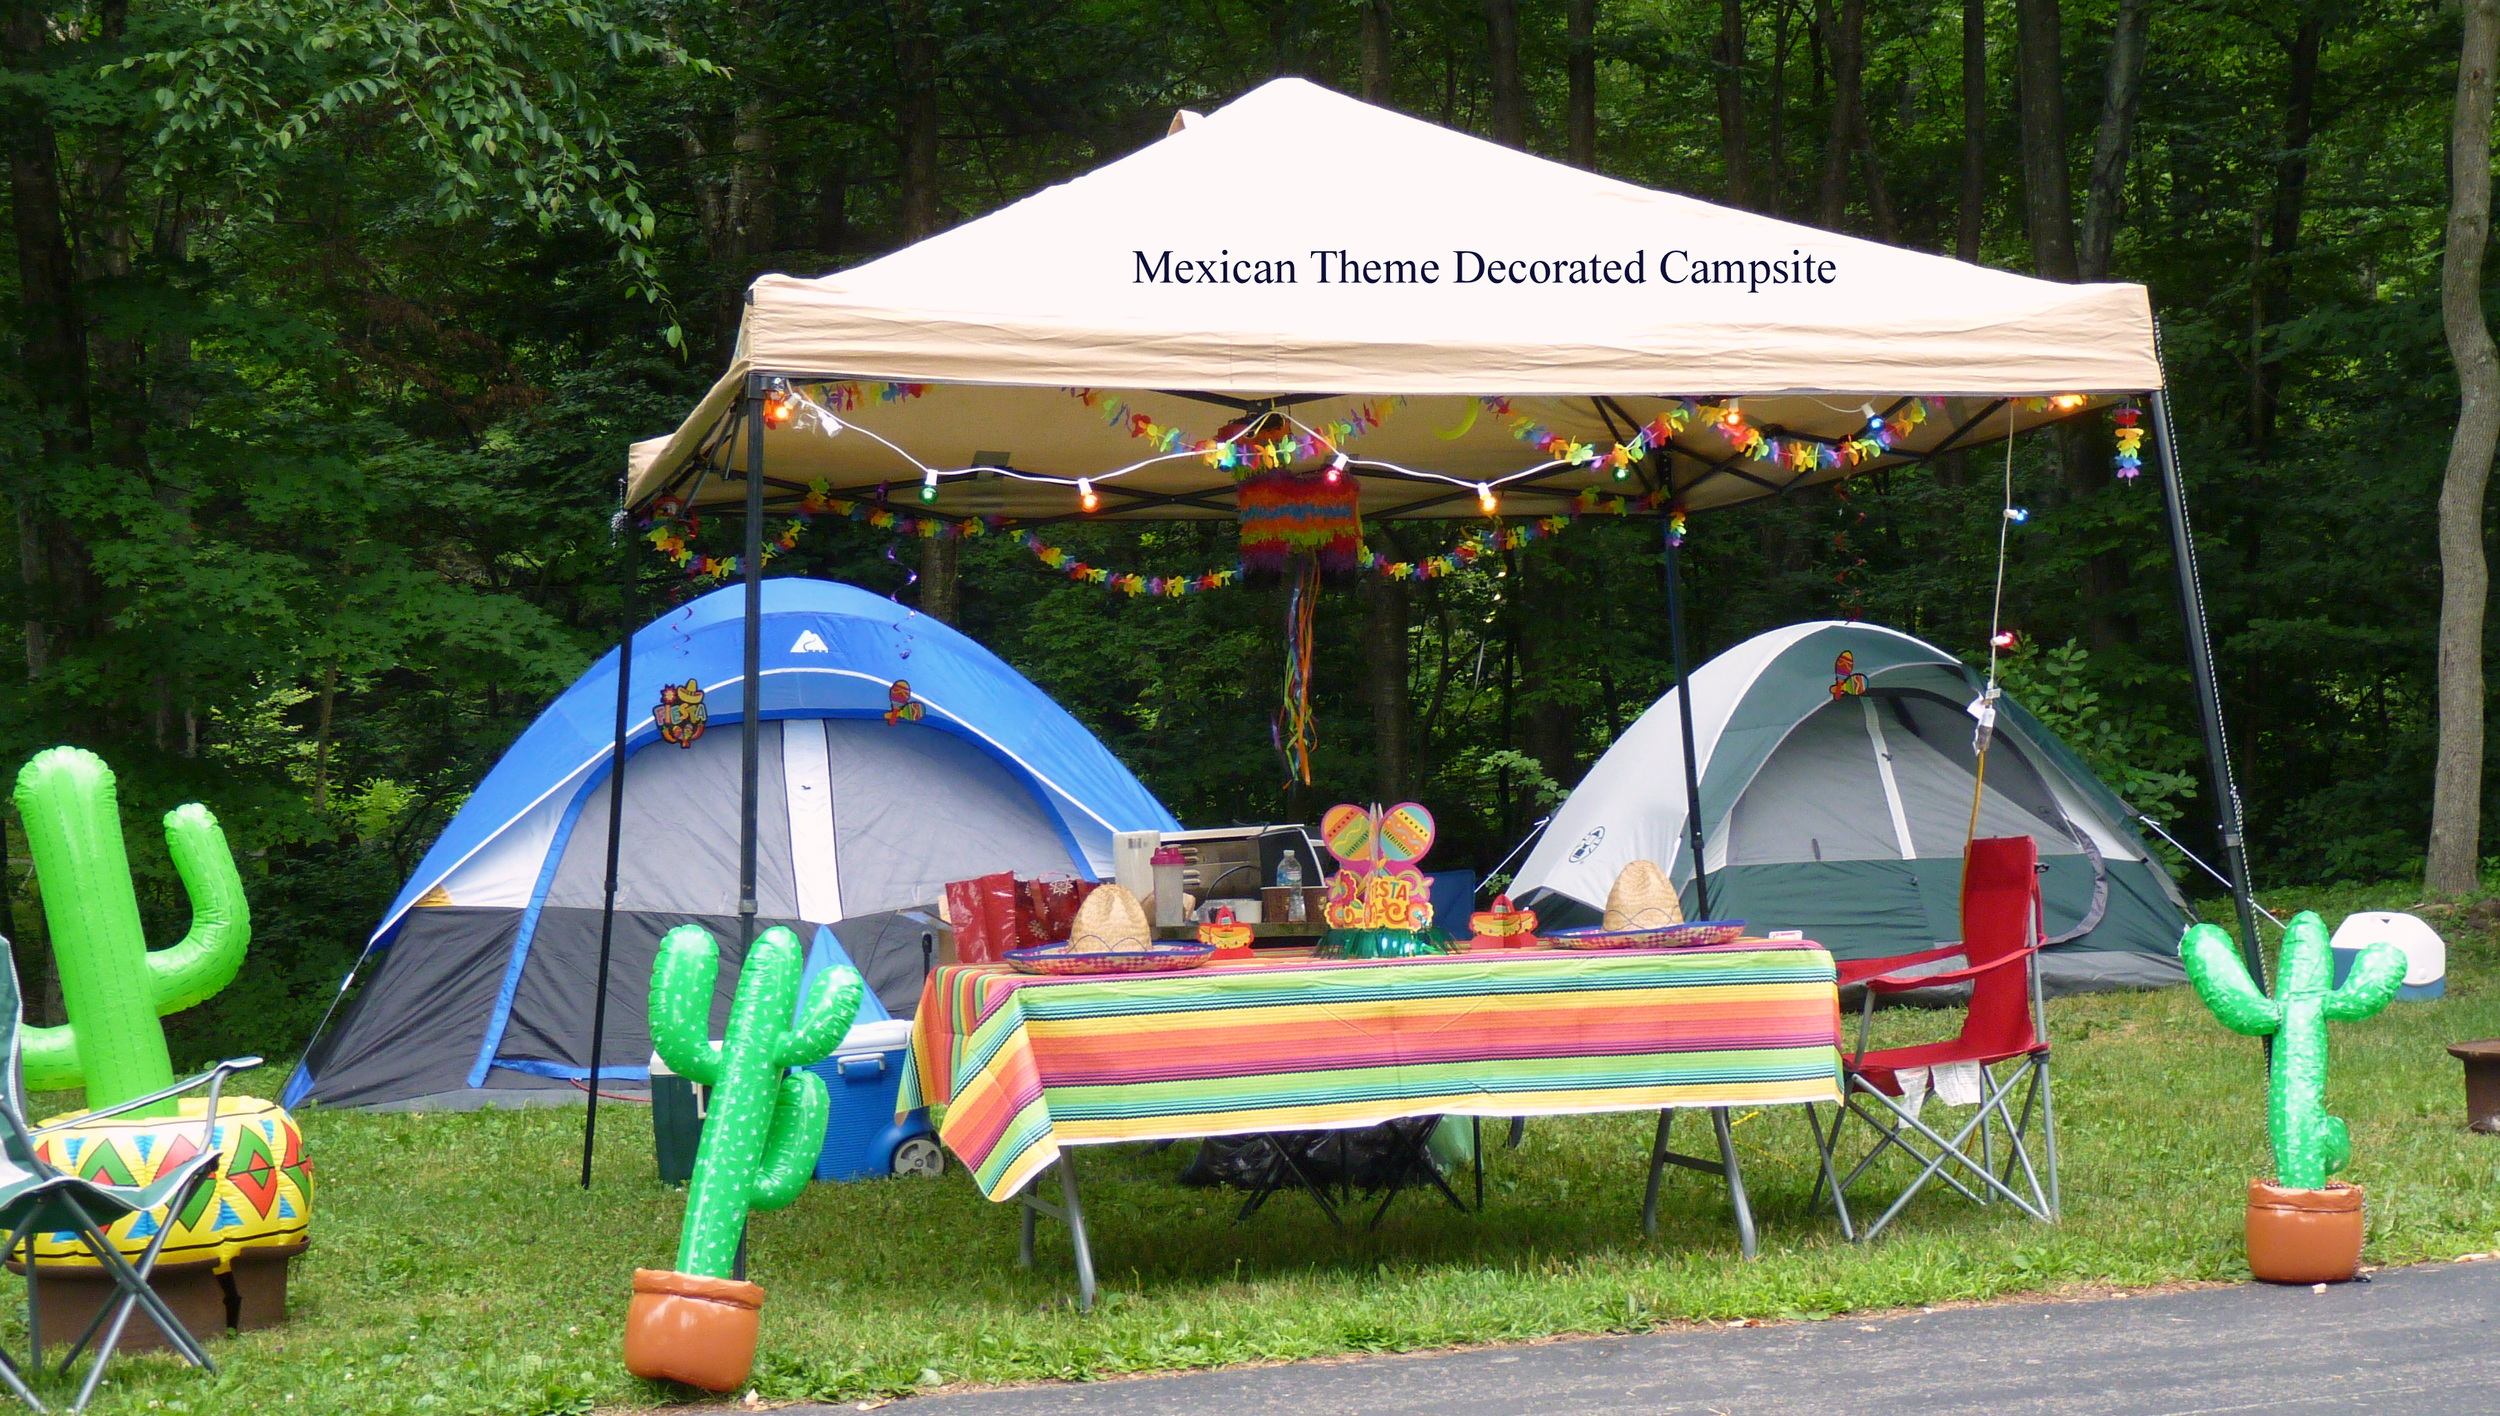 Mexican Themed Campsite Decorations